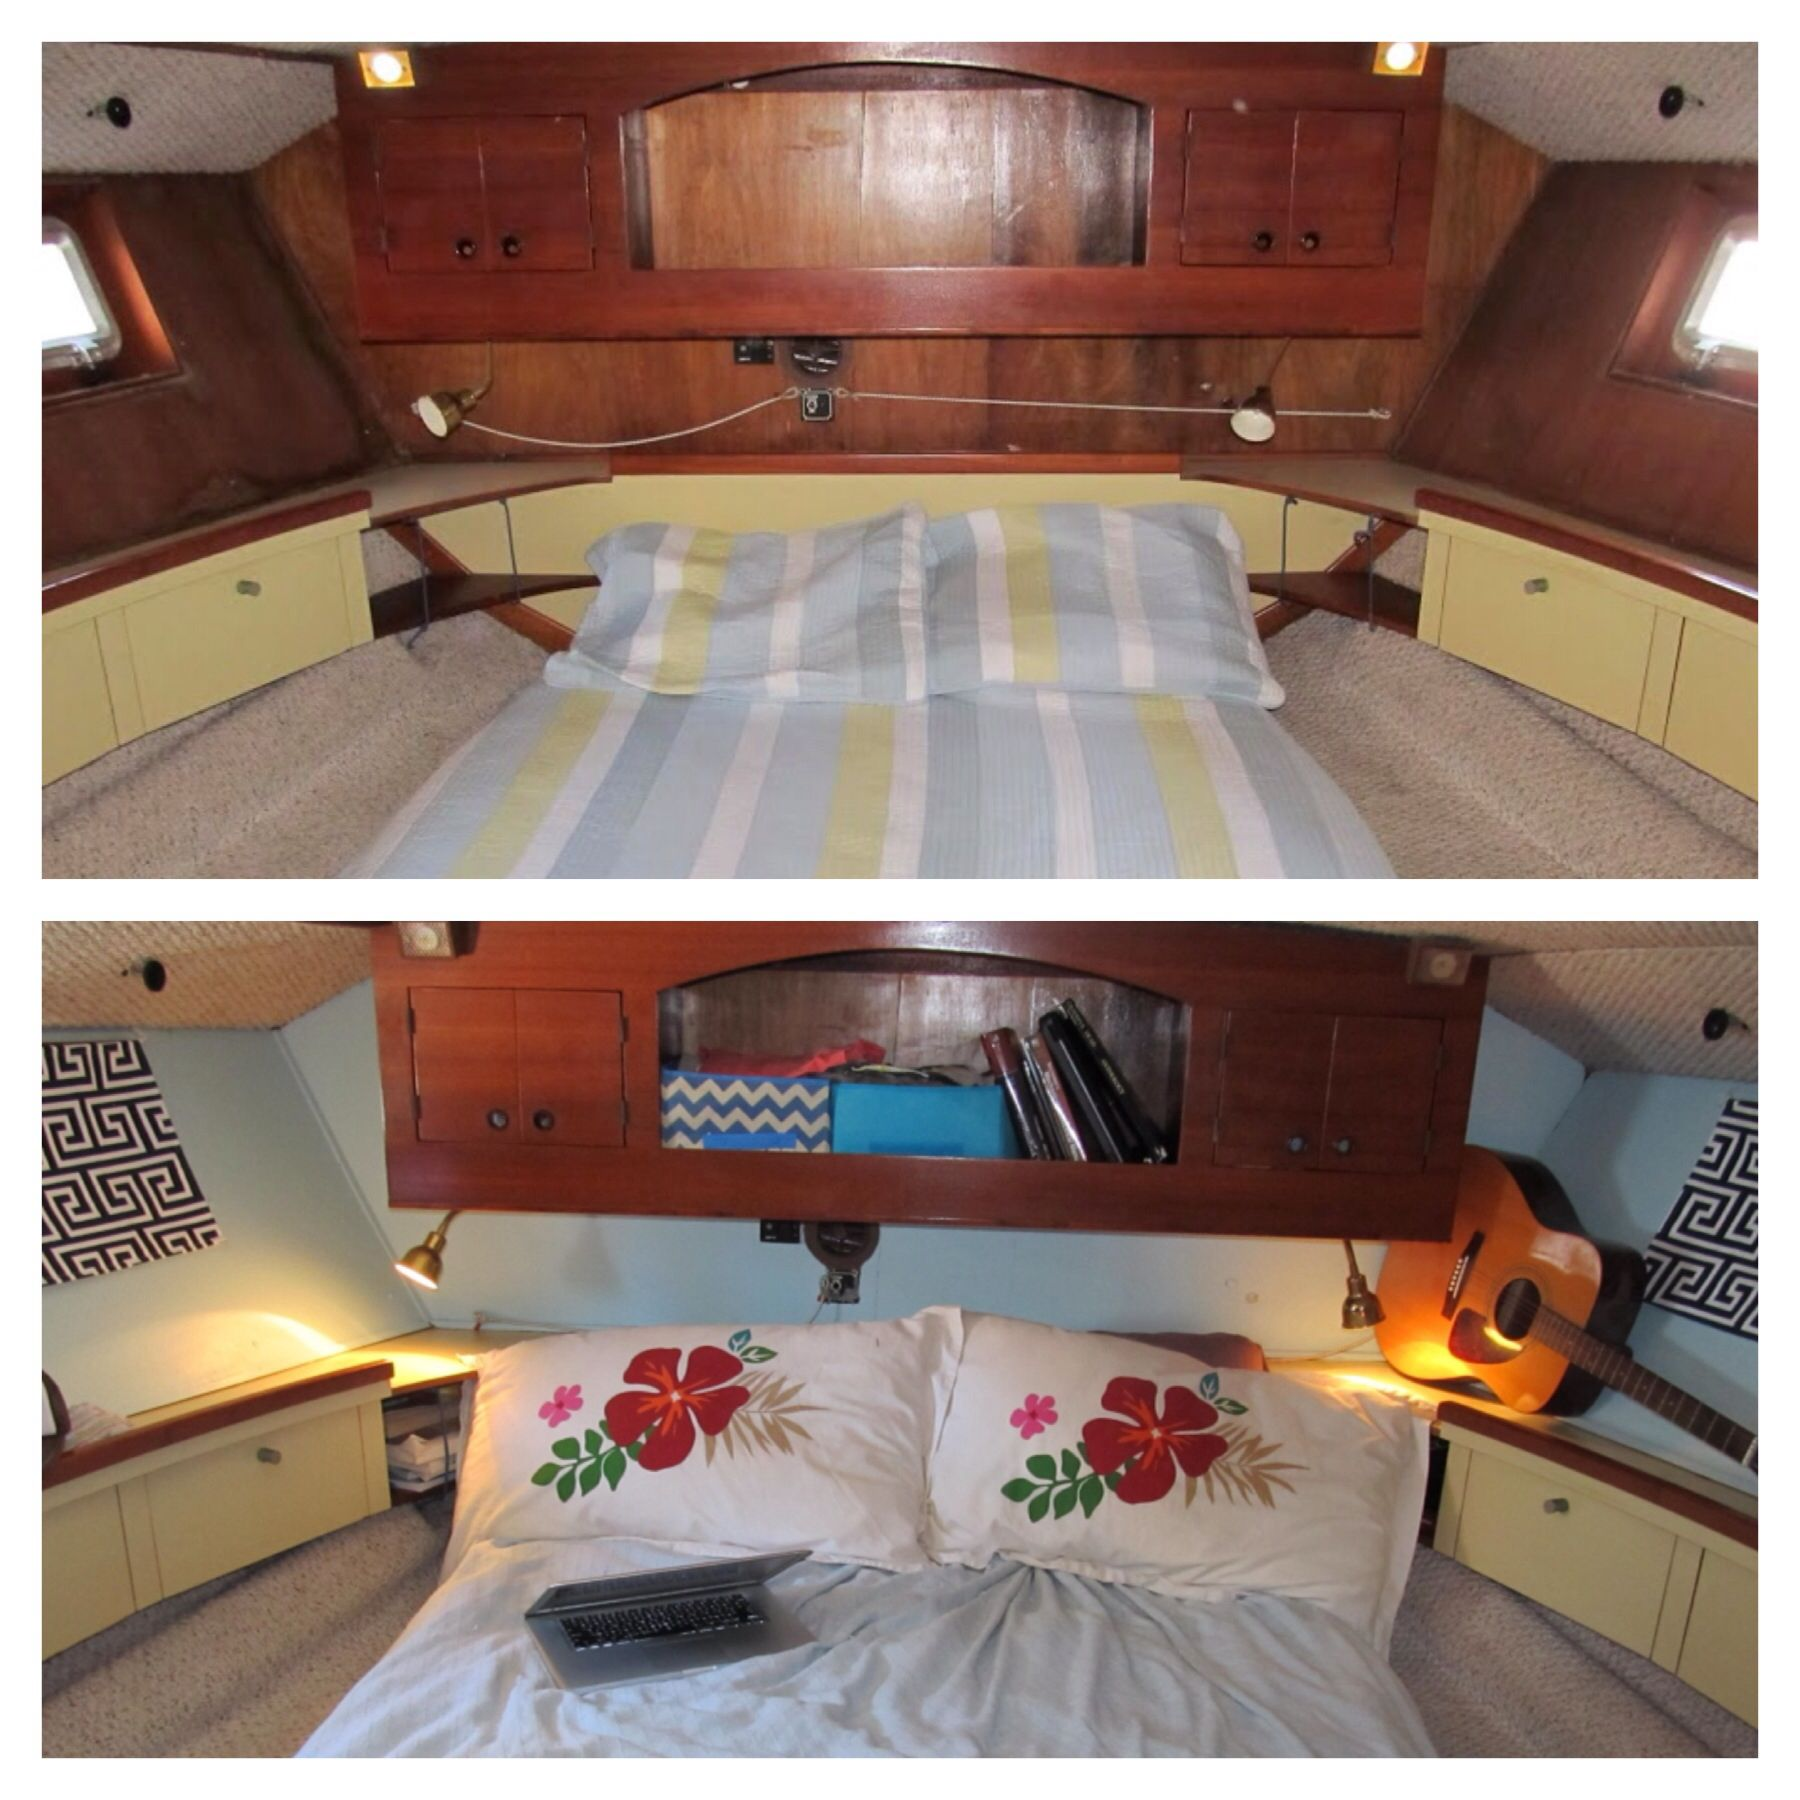 Boat Interior Makeover. For Less Than $200 This Family